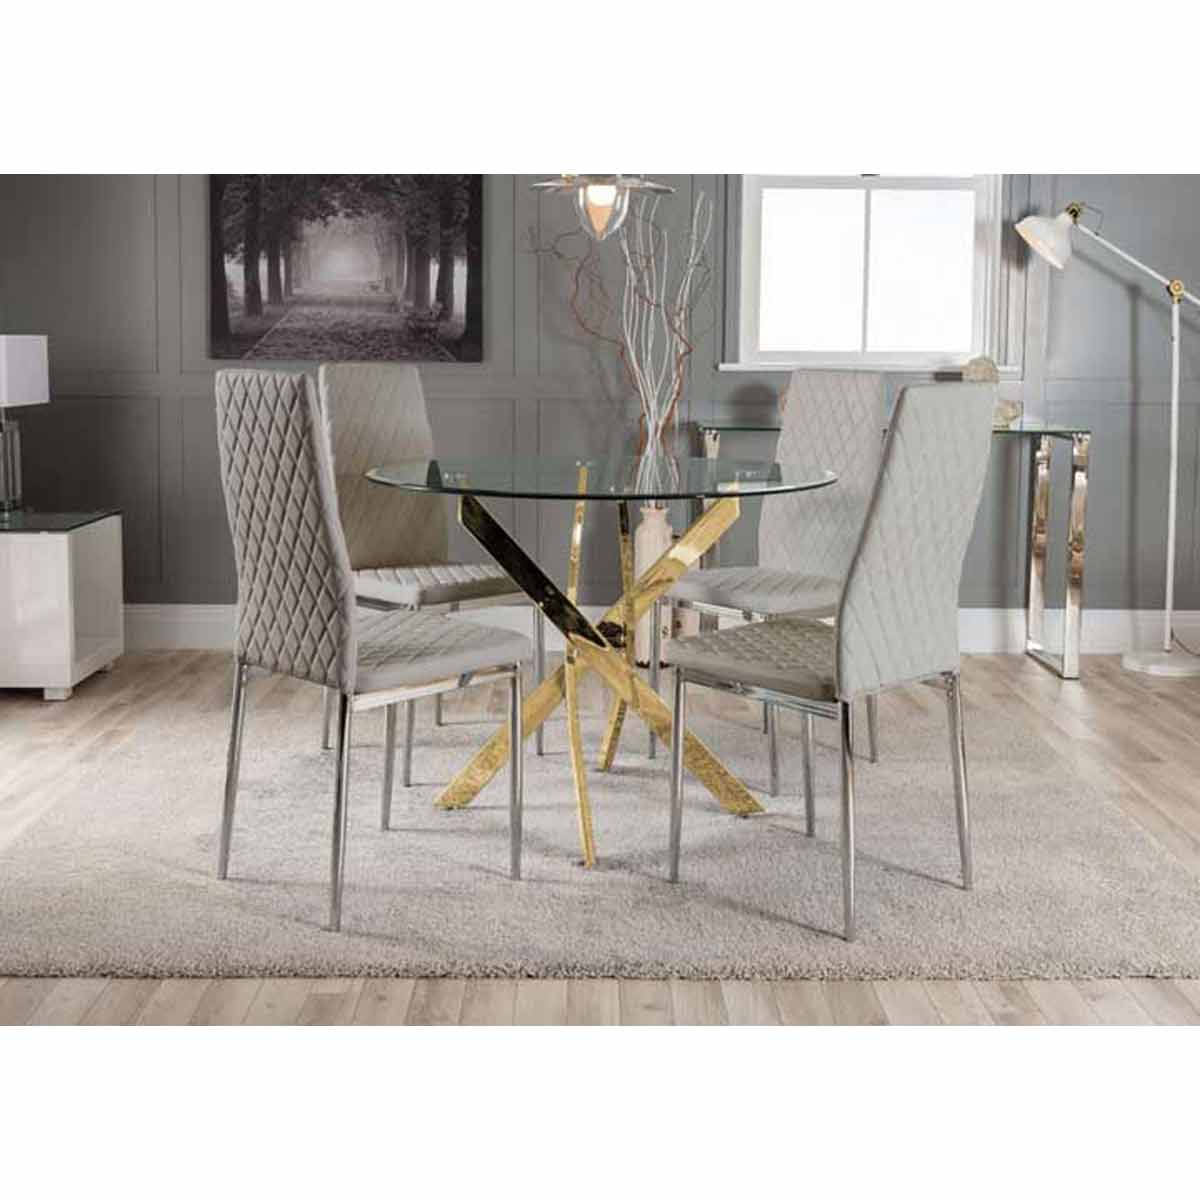 Furniture Box Novara Gold Metal Round Glass Dining Table And 4 Elephant Grey Milan Dining Chairs